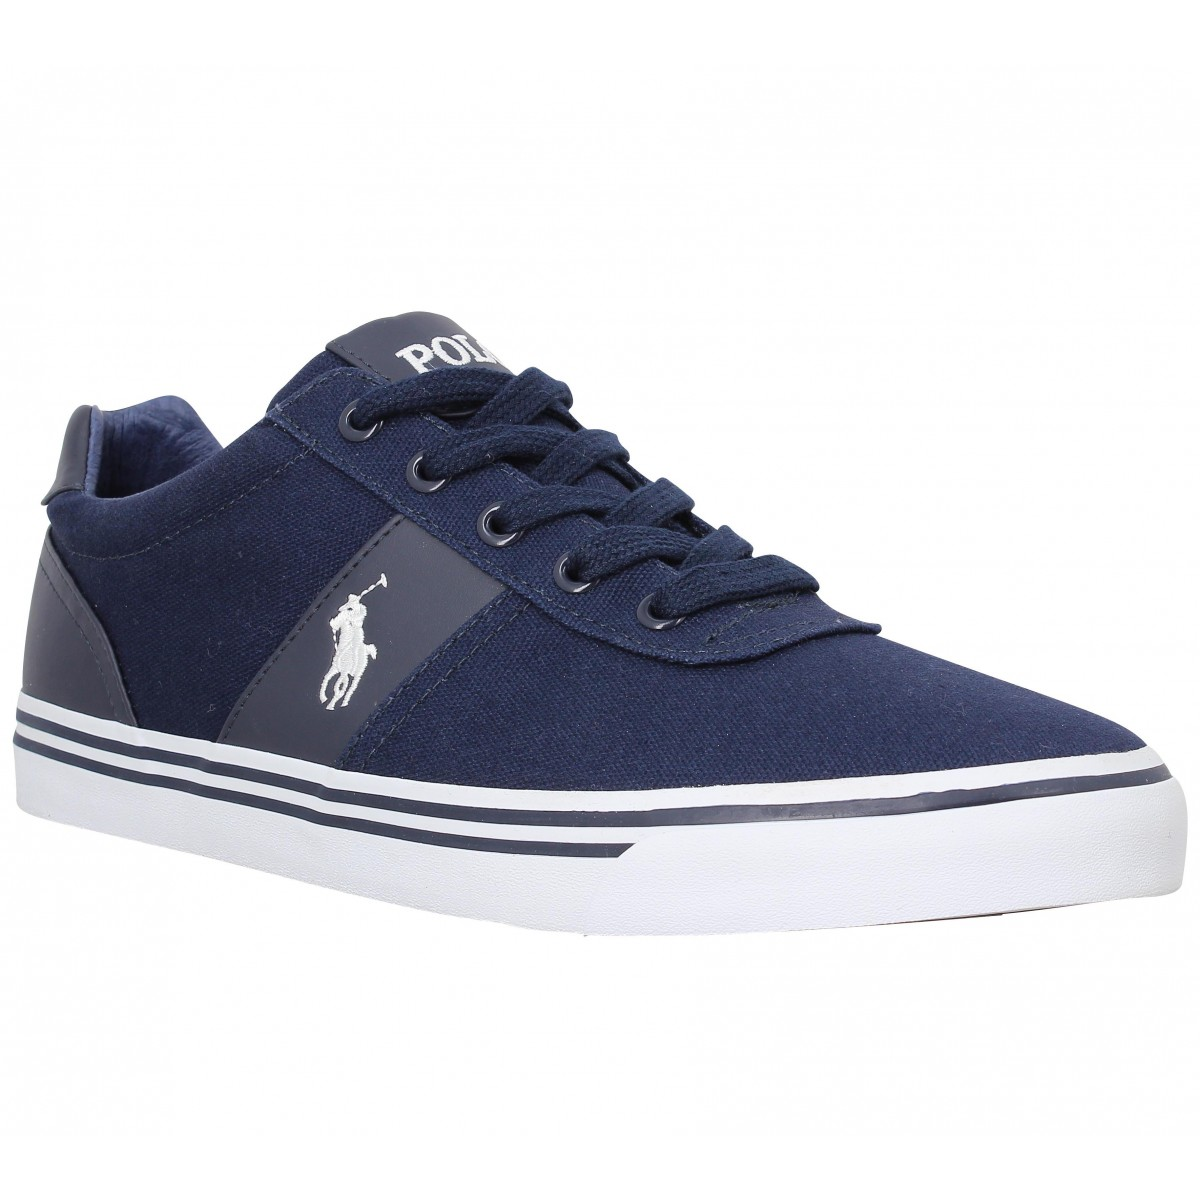 Baskets POLO RALPH LAUREN Hanford toile Navy